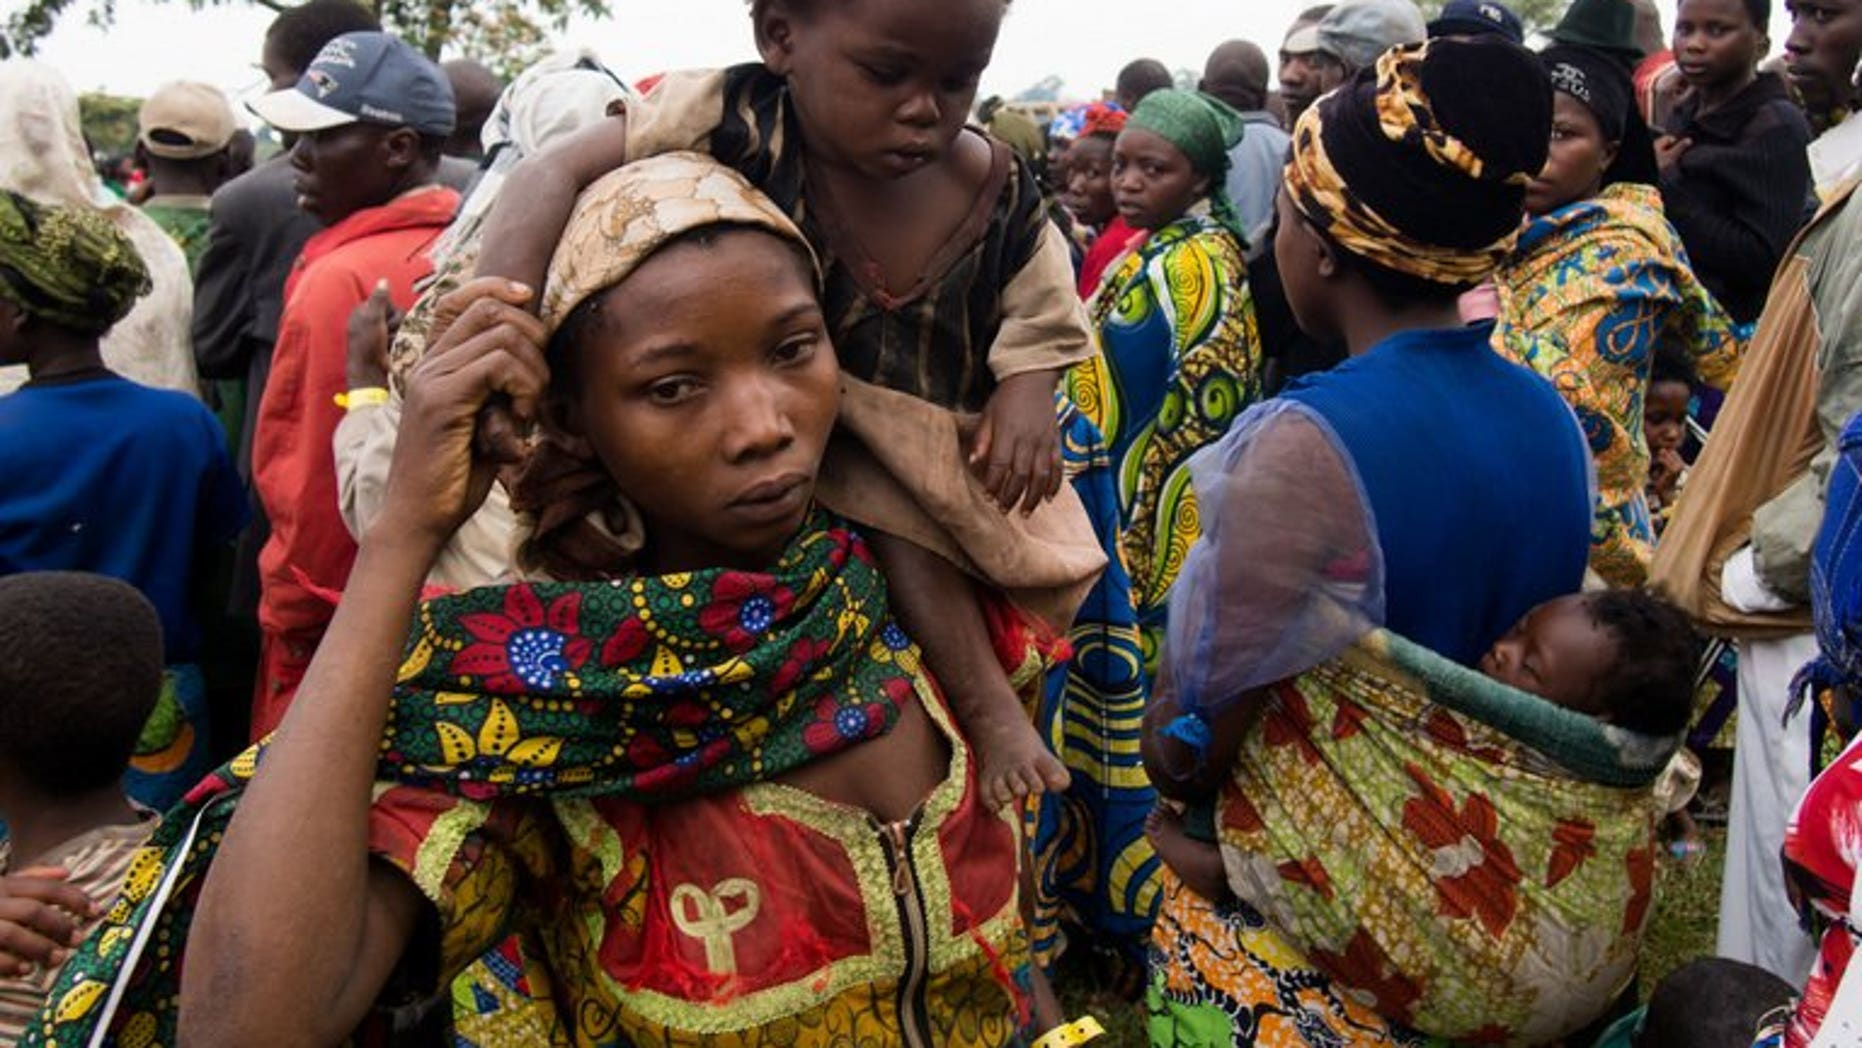 A mother carries her baby at Rwamwanja refugee camp, in the Kamwenge district, most of them from Democratic Republic of Congo, March 6, 2013.